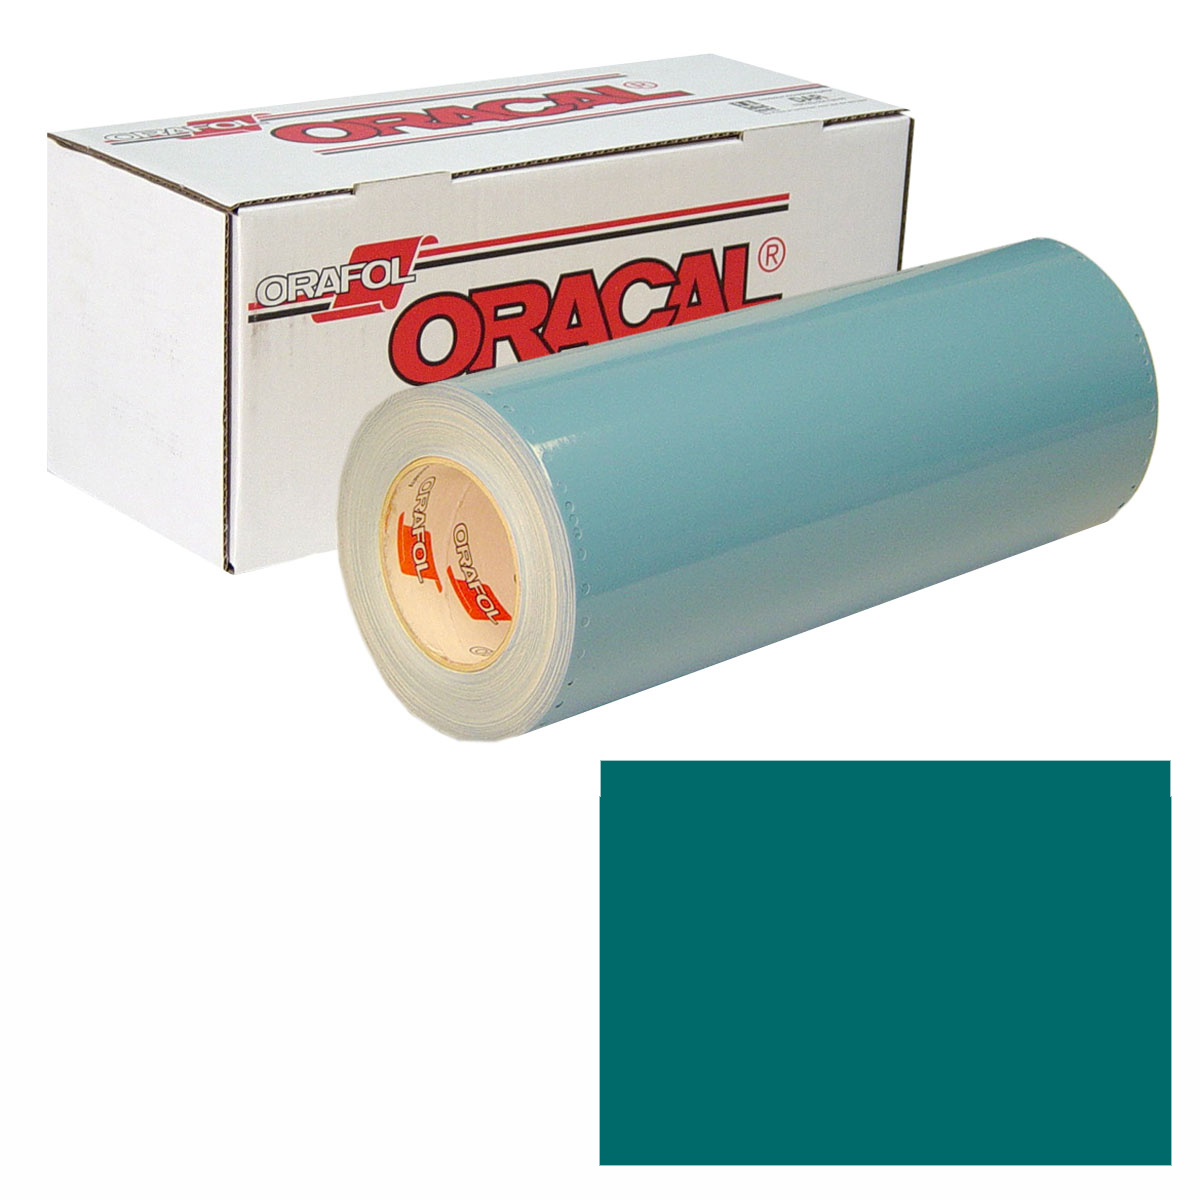 ORACAL 751 Unp 24In X 50Yd 608 Petrol